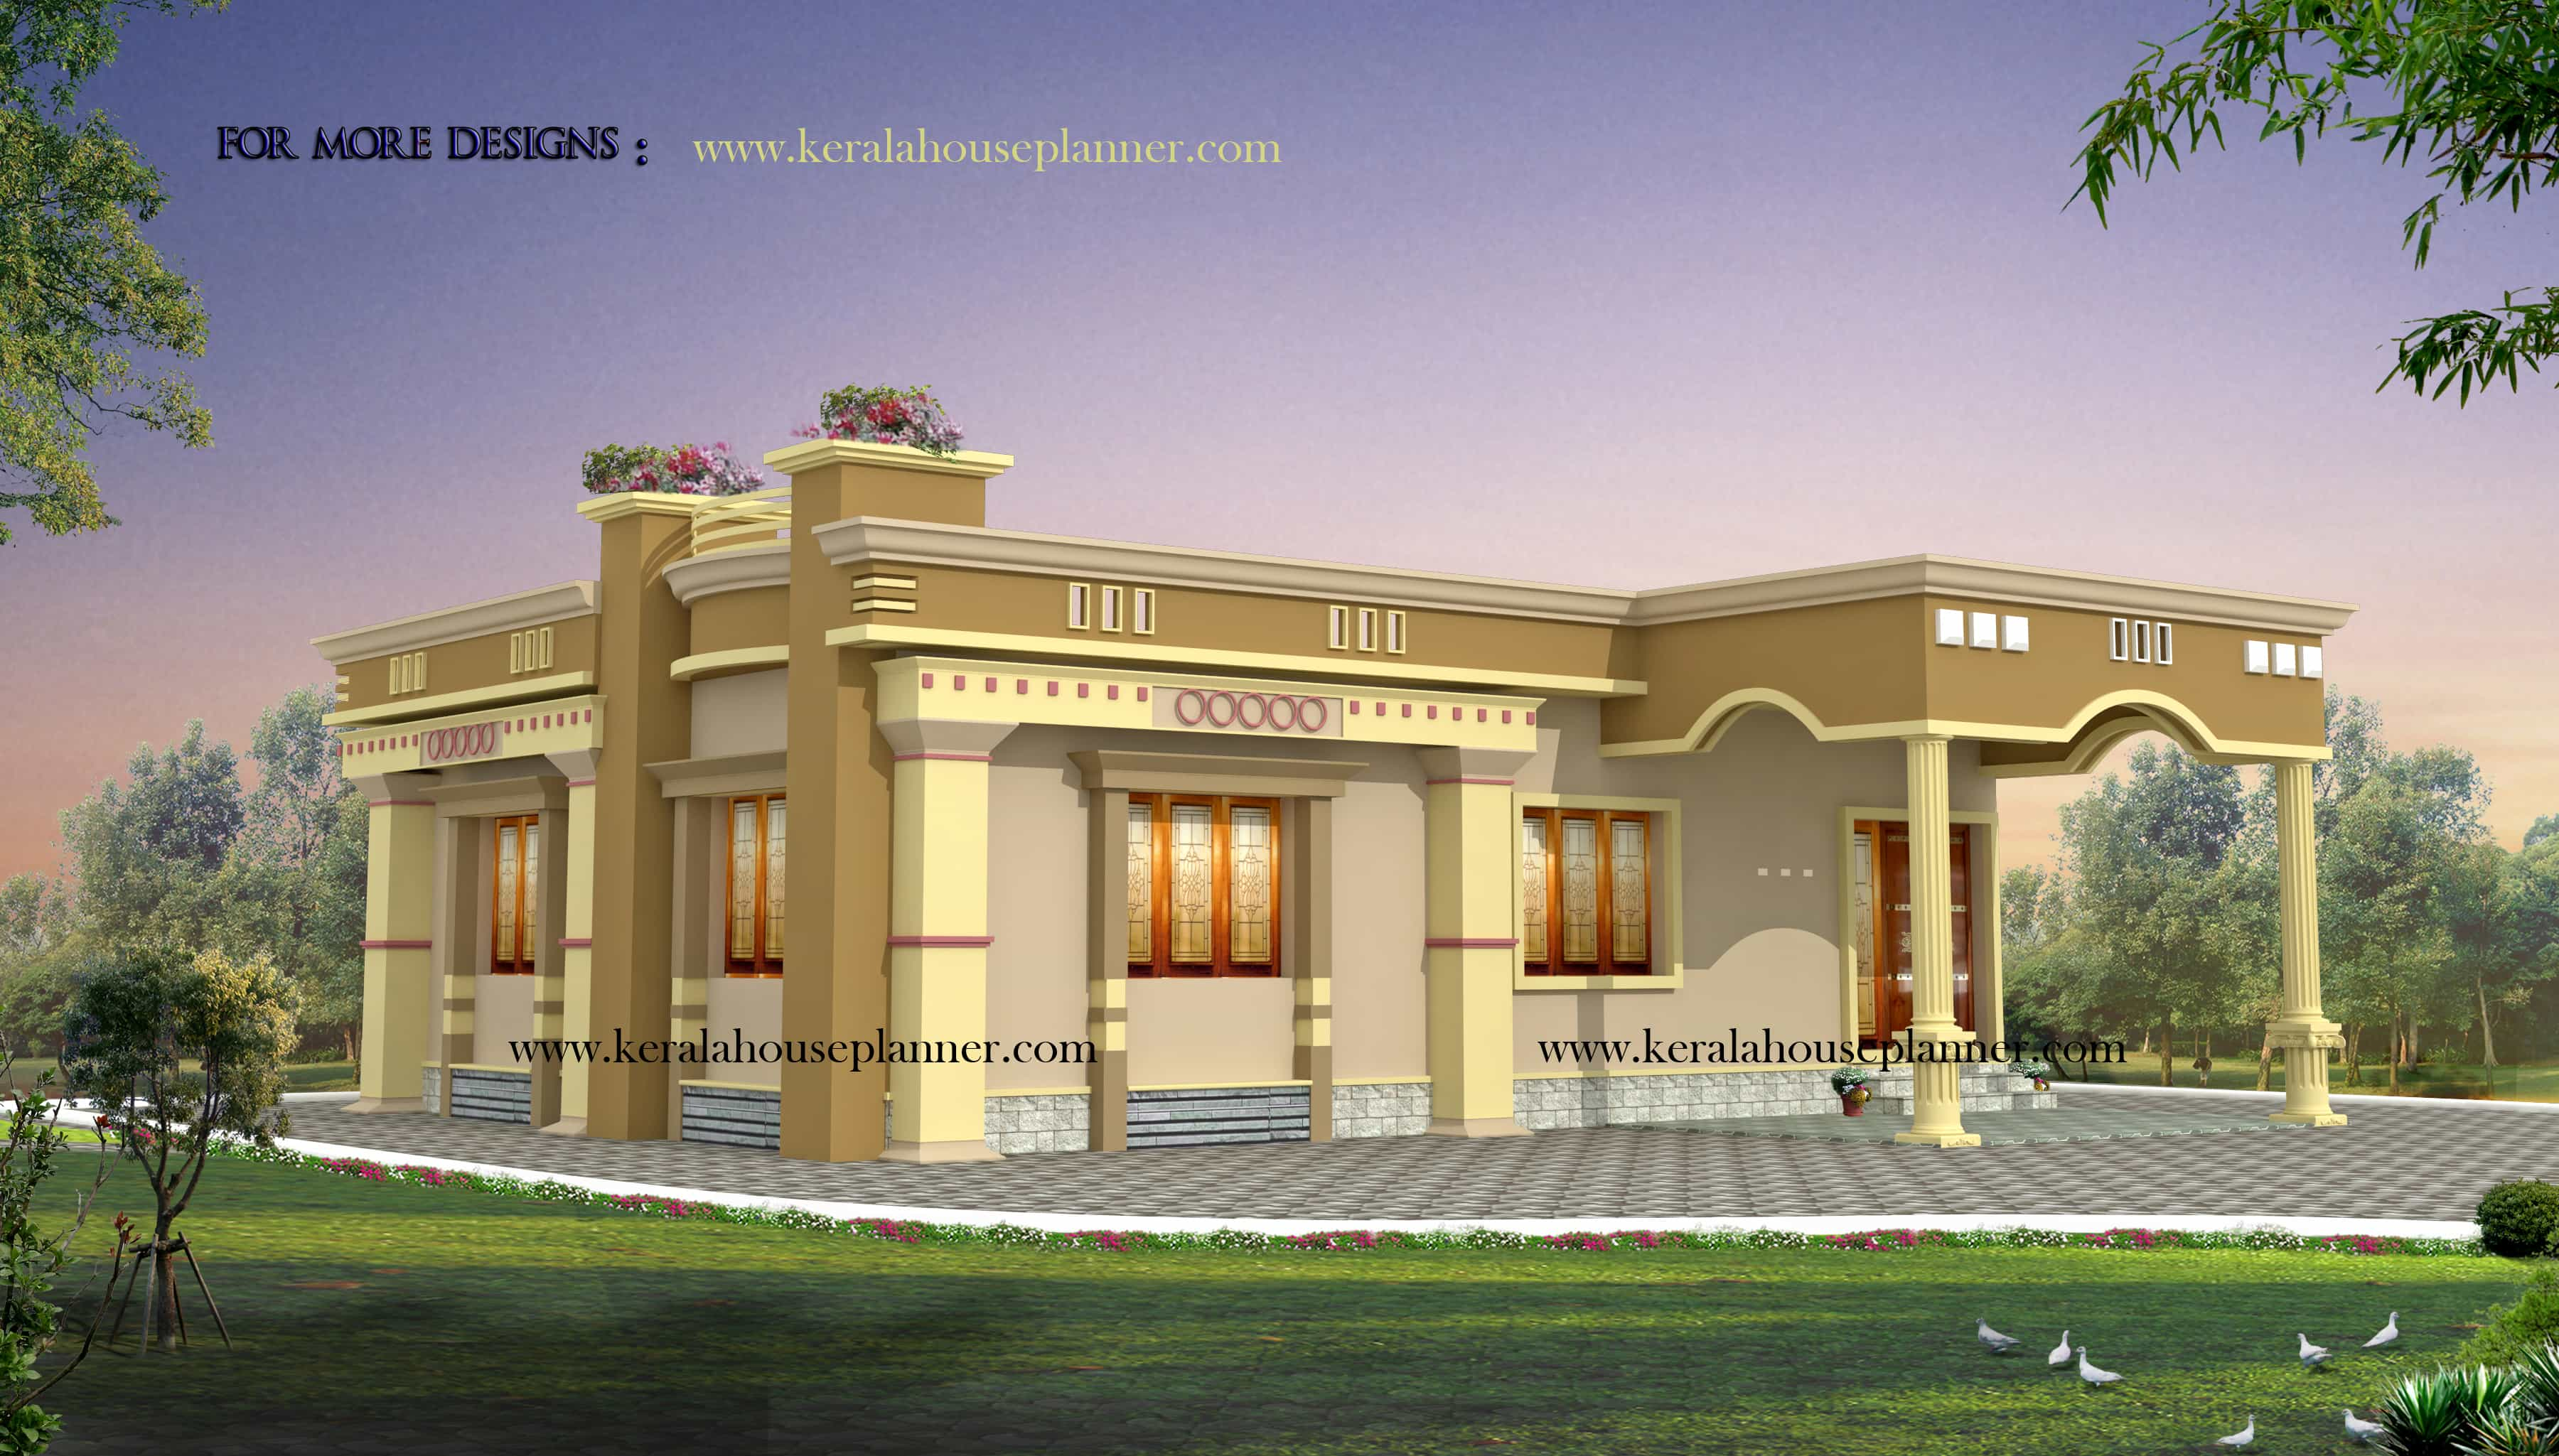 kerala house plans 1200 sq ft with photos khp. Black Bedroom Furniture Sets. Home Design Ideas